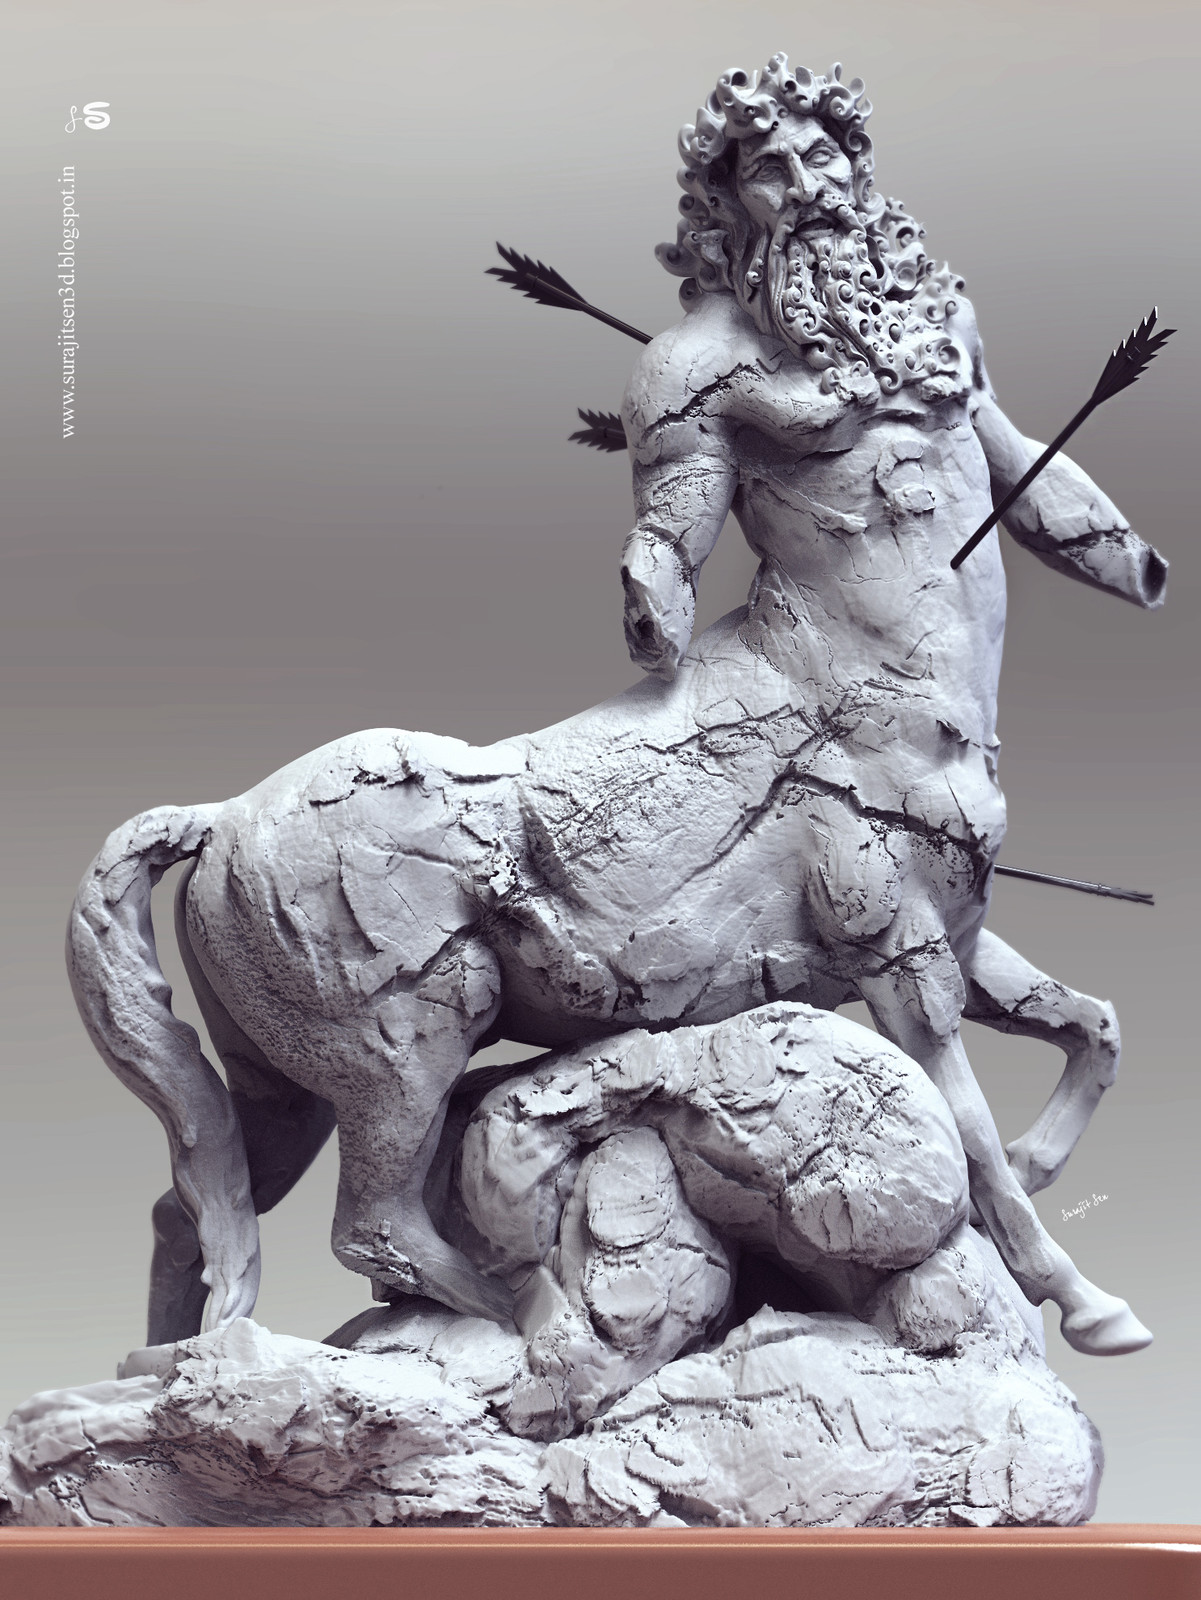 Here is the updated version of one of my rough Digital sculpt study. .. Centaur, inspired from the ancient Art and sculpting. I like the hidden art in damaged idols and try to sculpt it digitally.